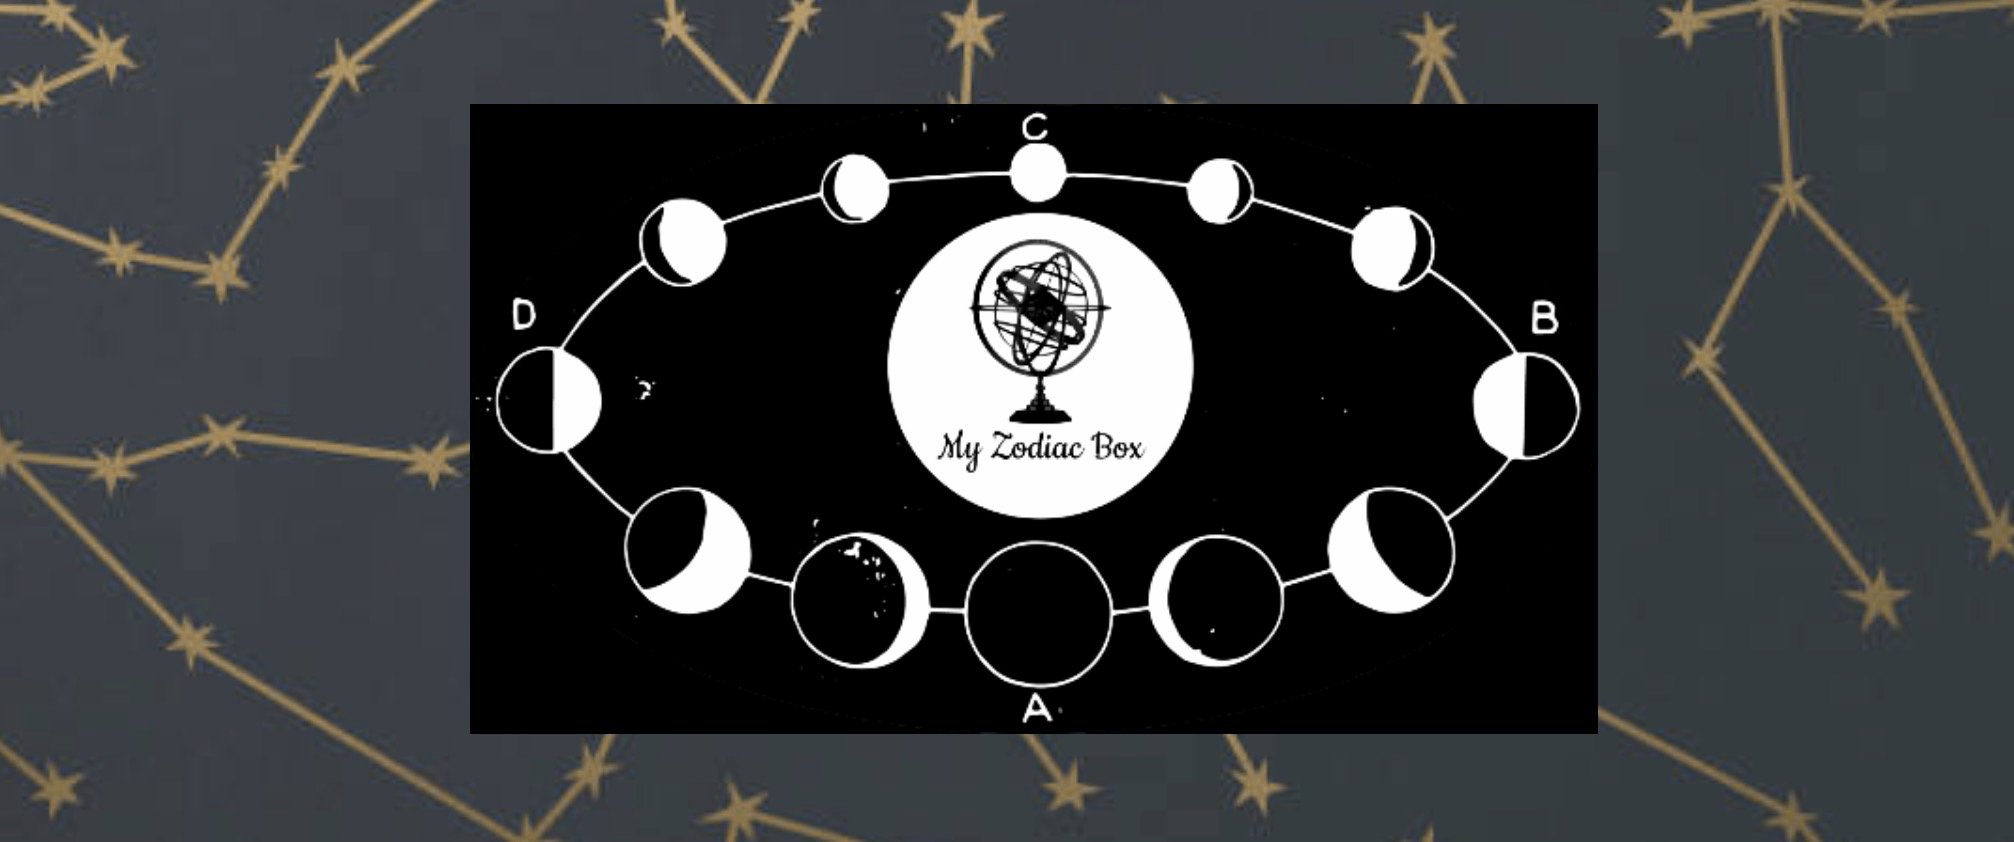 My Zodiac Box Coupon: Save 25% on First Box with 3-Month Subscription!